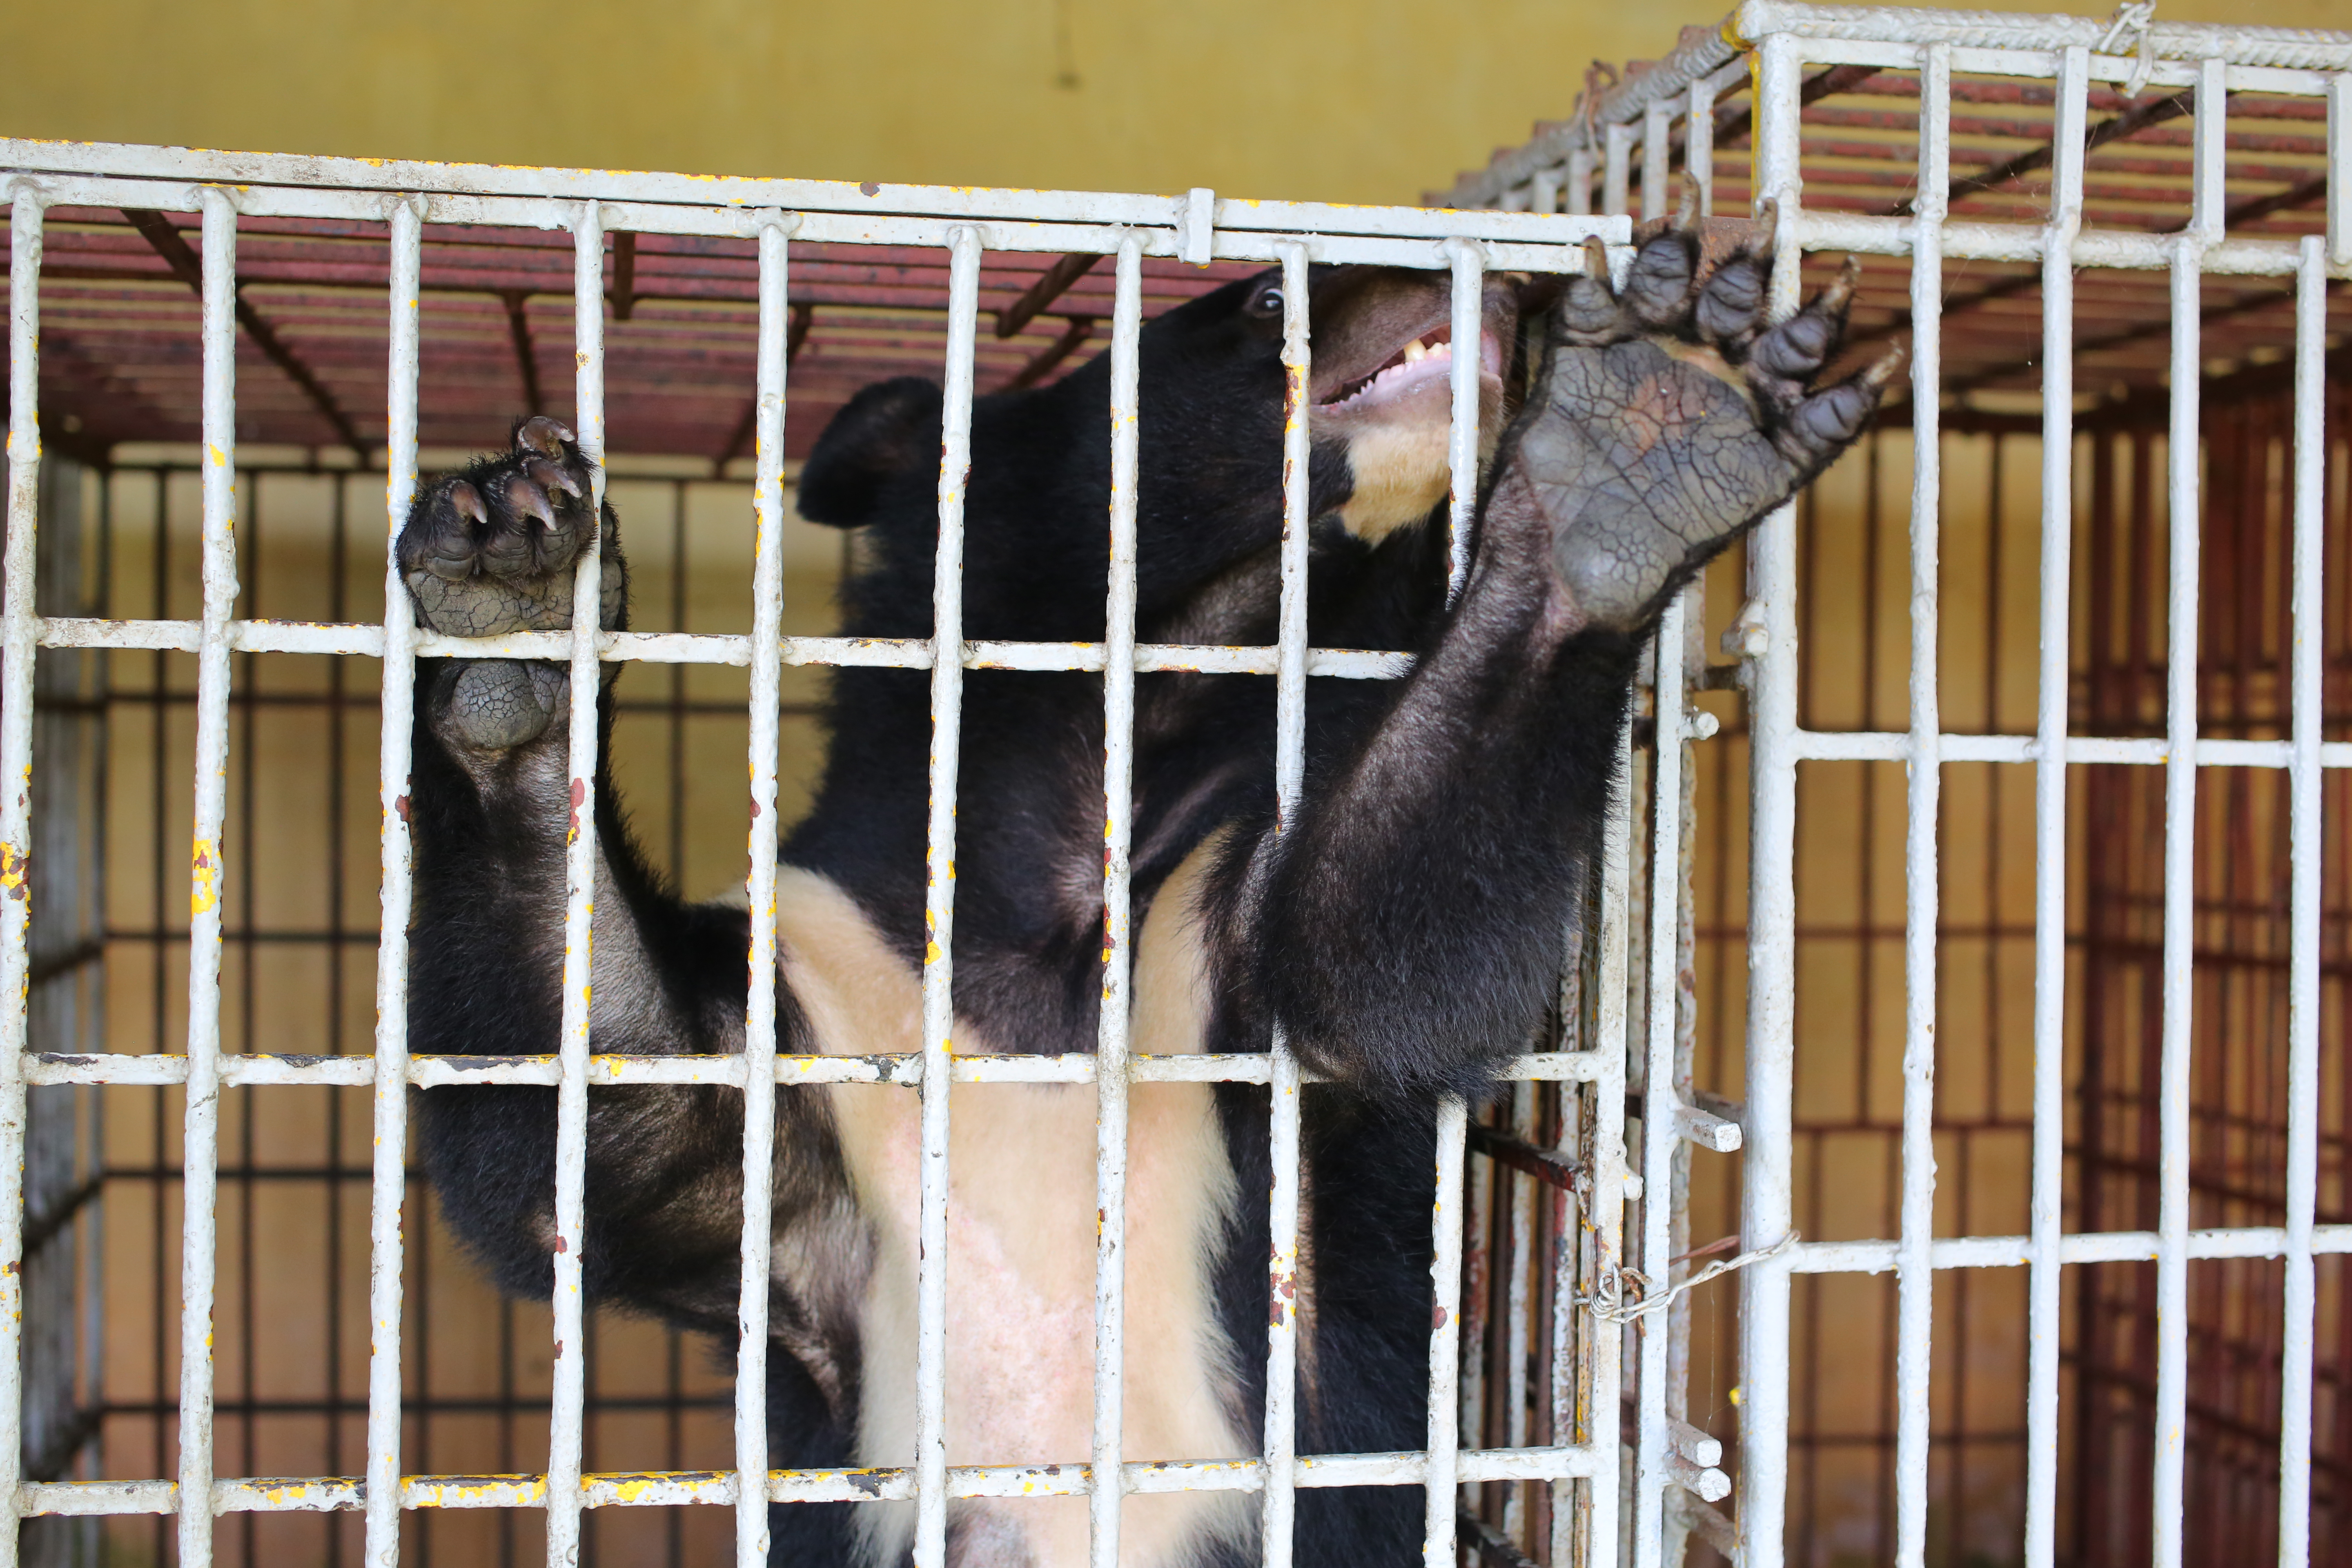 bile bear Cam in a cage